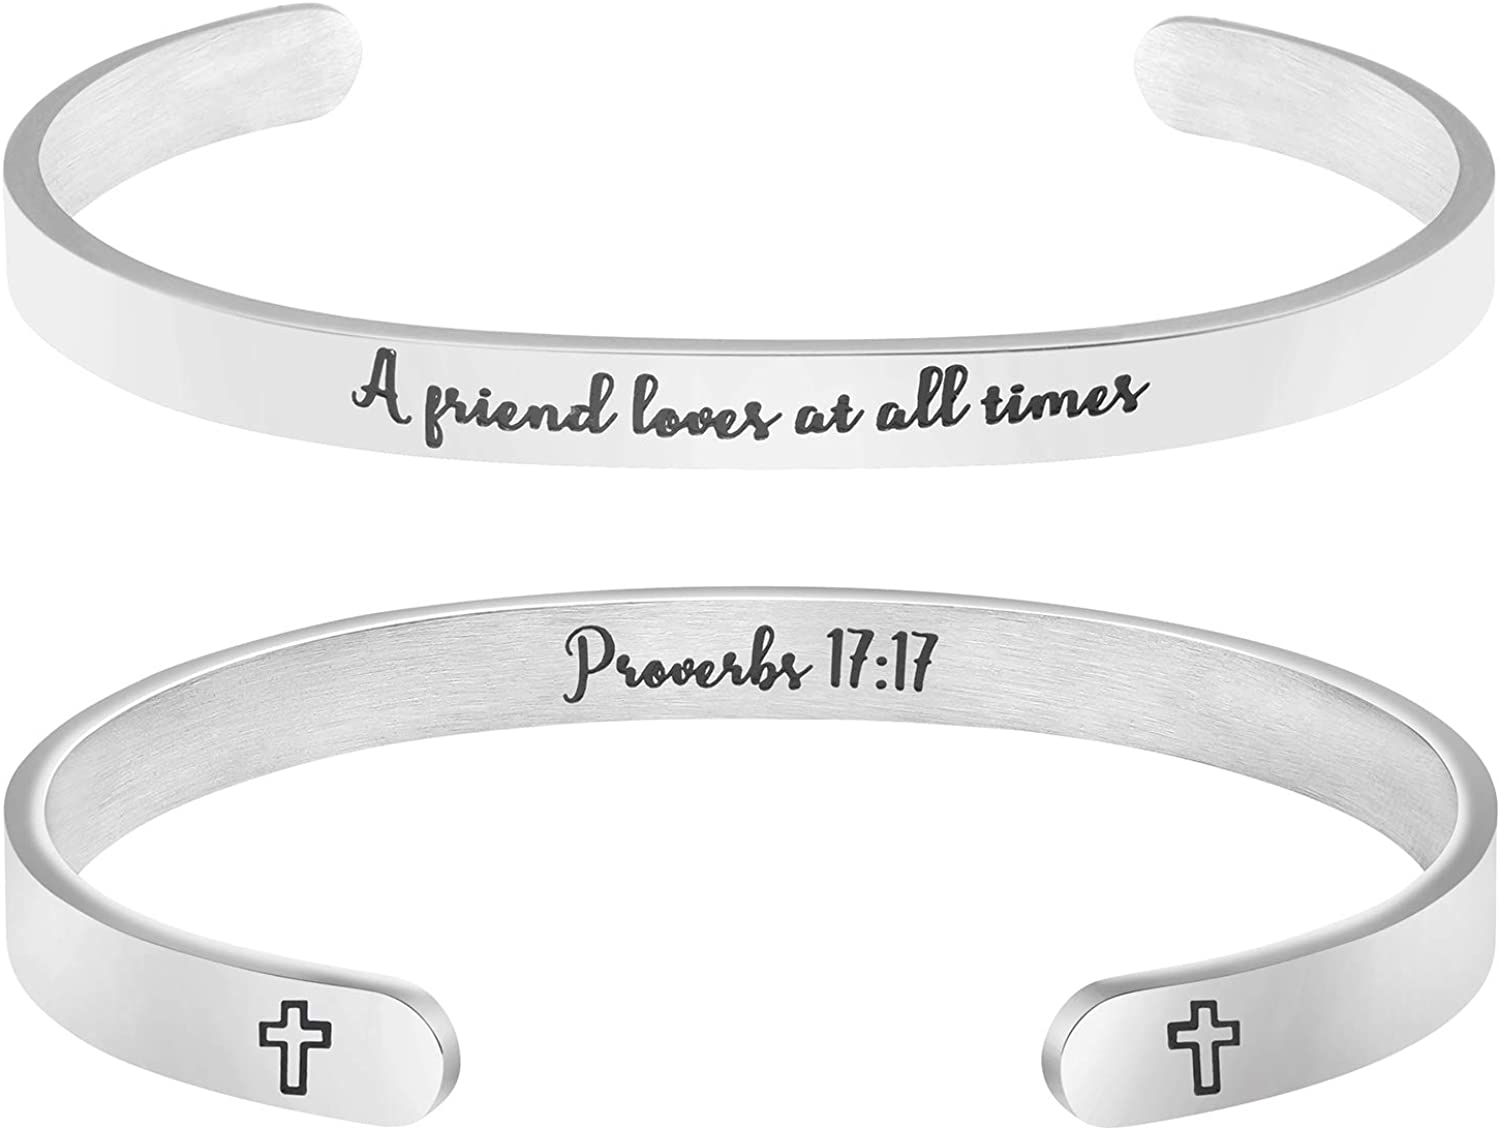 Bracelet Gift Wife Jewelry Gift Matthew 7: 7 Bible Verse Jewelry Gift For Her Ask Seek Knock Handstamped Cuff Bracelet Gift For Mom